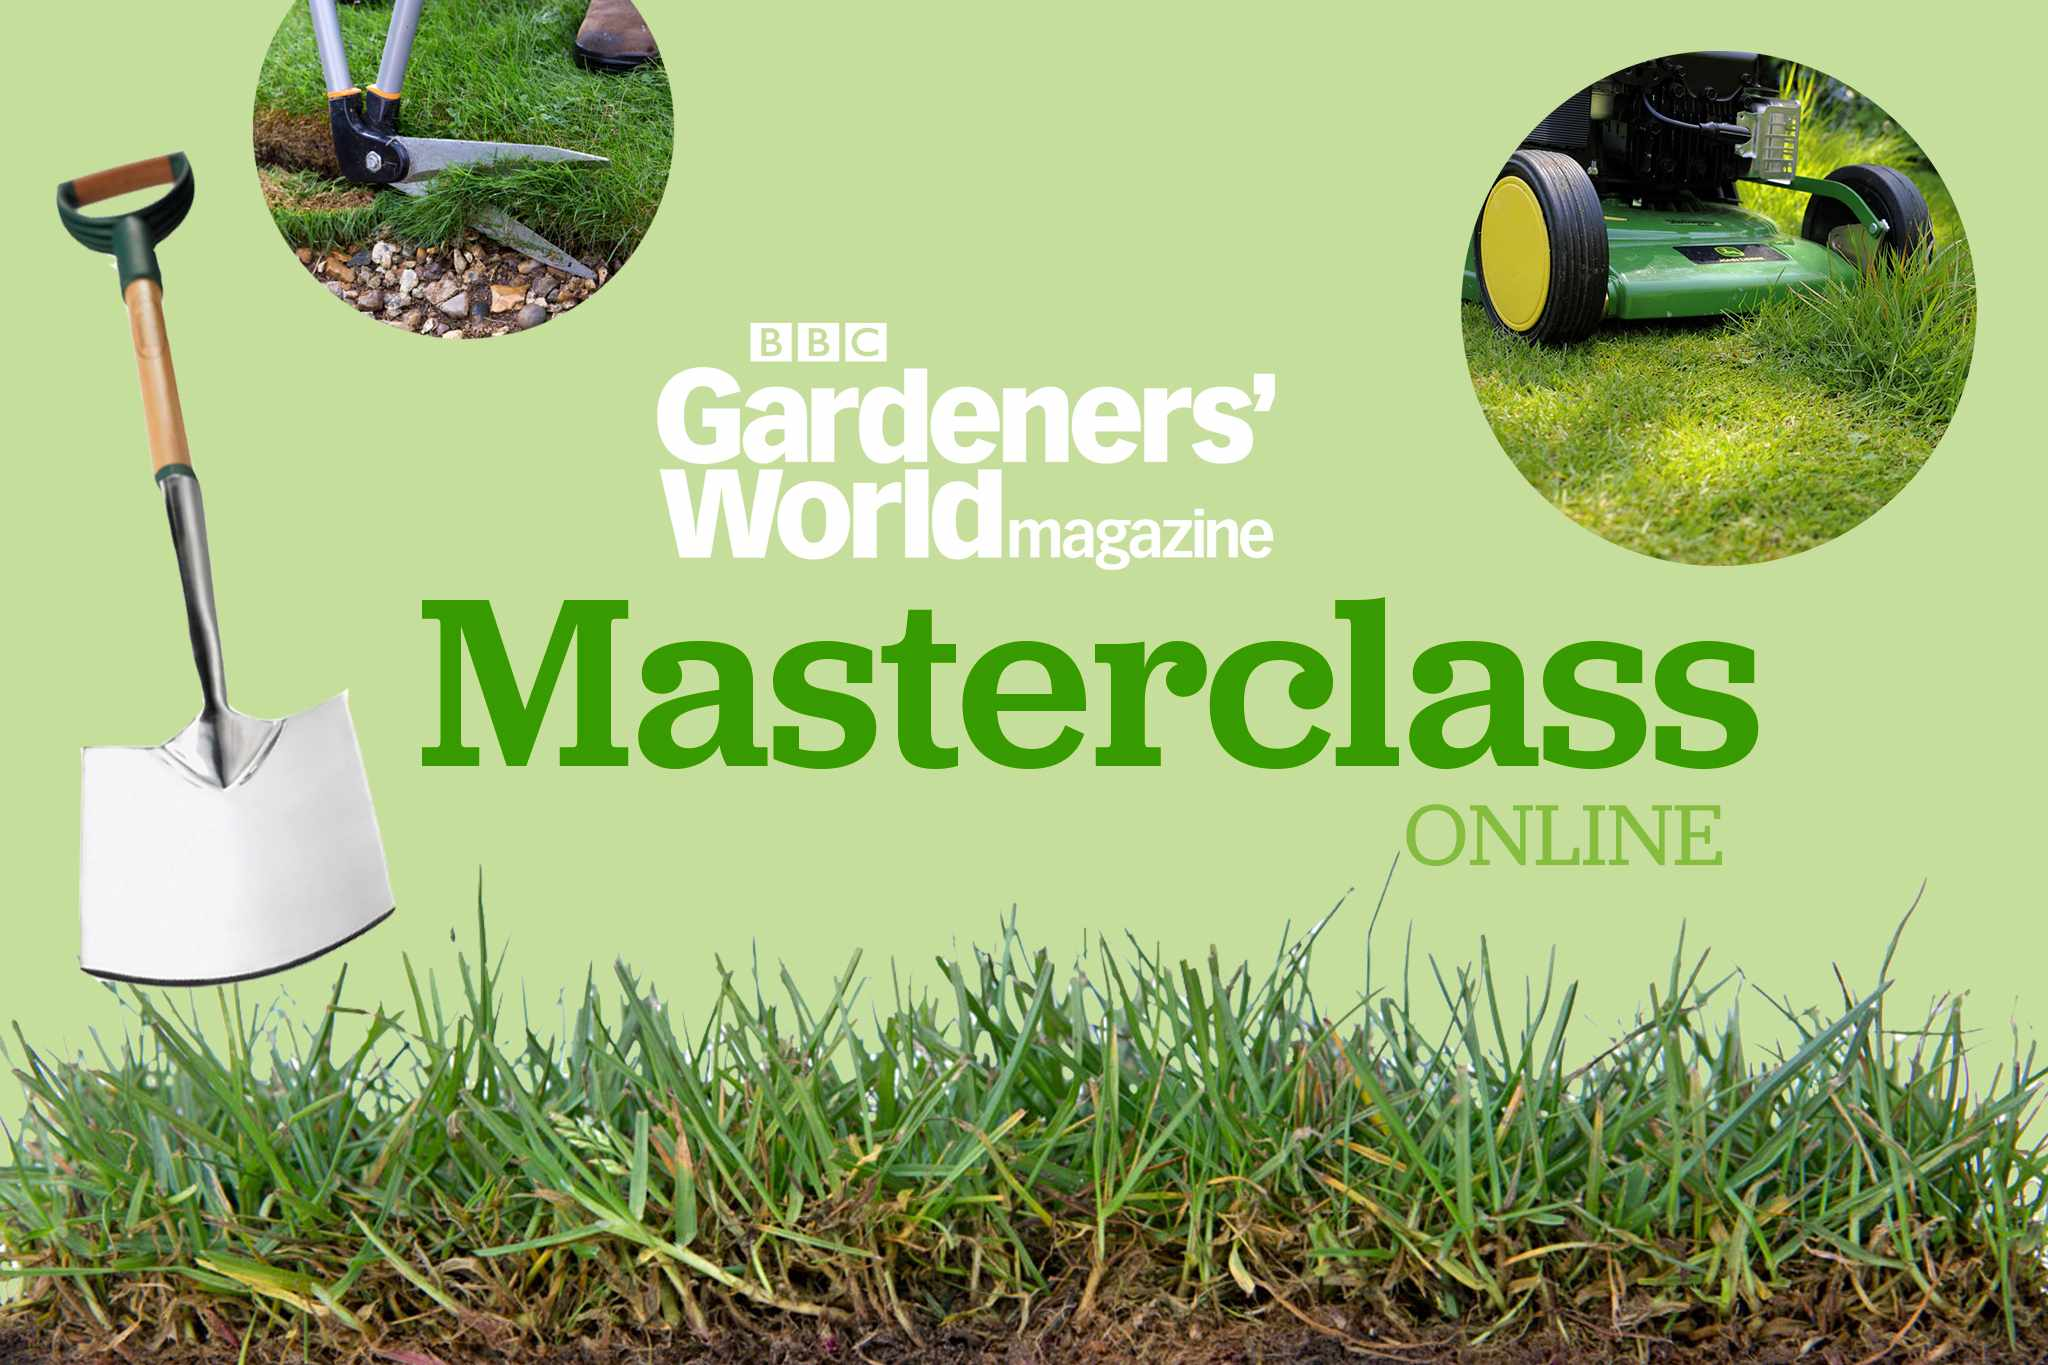 Essential Spring Lawn Care Masterclass Online - 16 April 2021